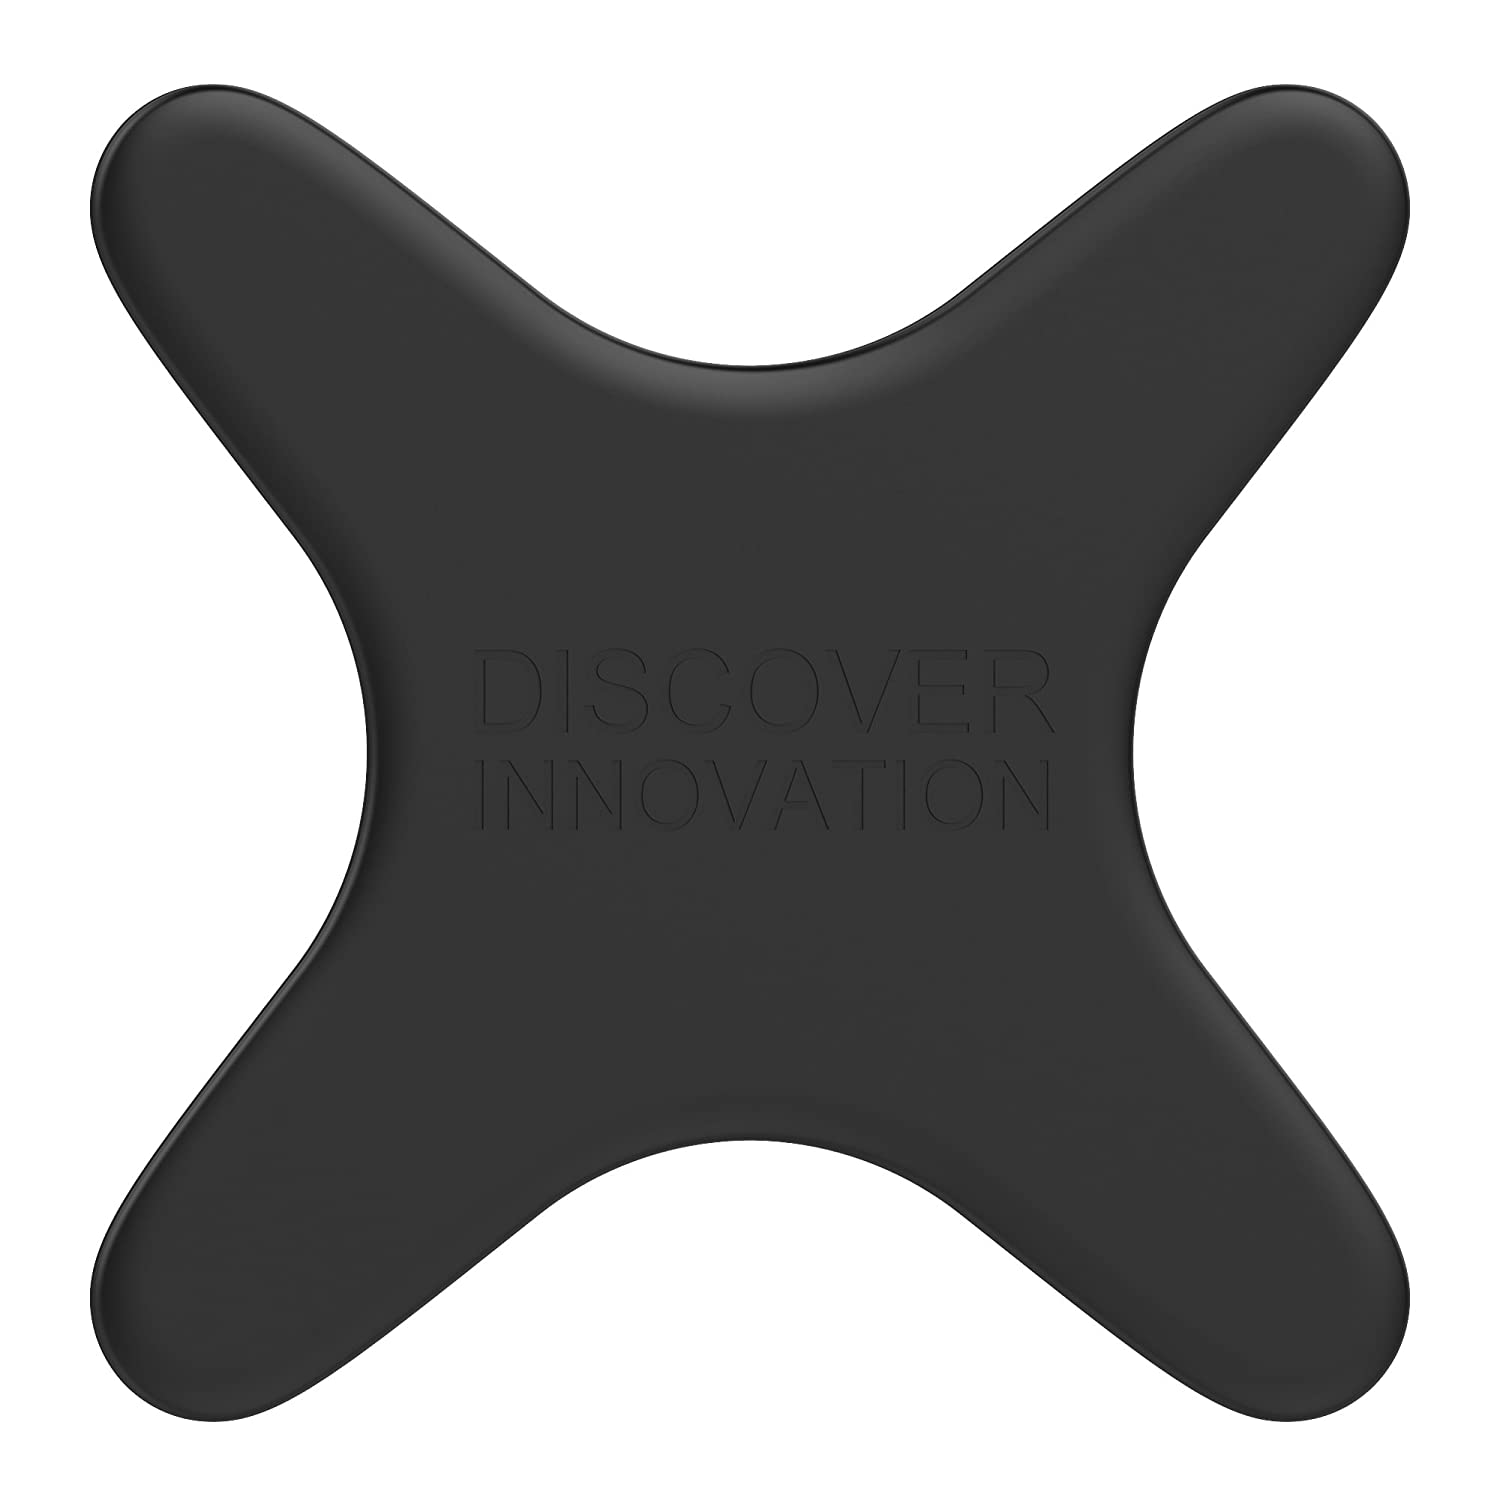 Nillkin Magnet Plate with Liquid Silicone Skin for Nillkin Car Magnetic Wireless Charger - Black